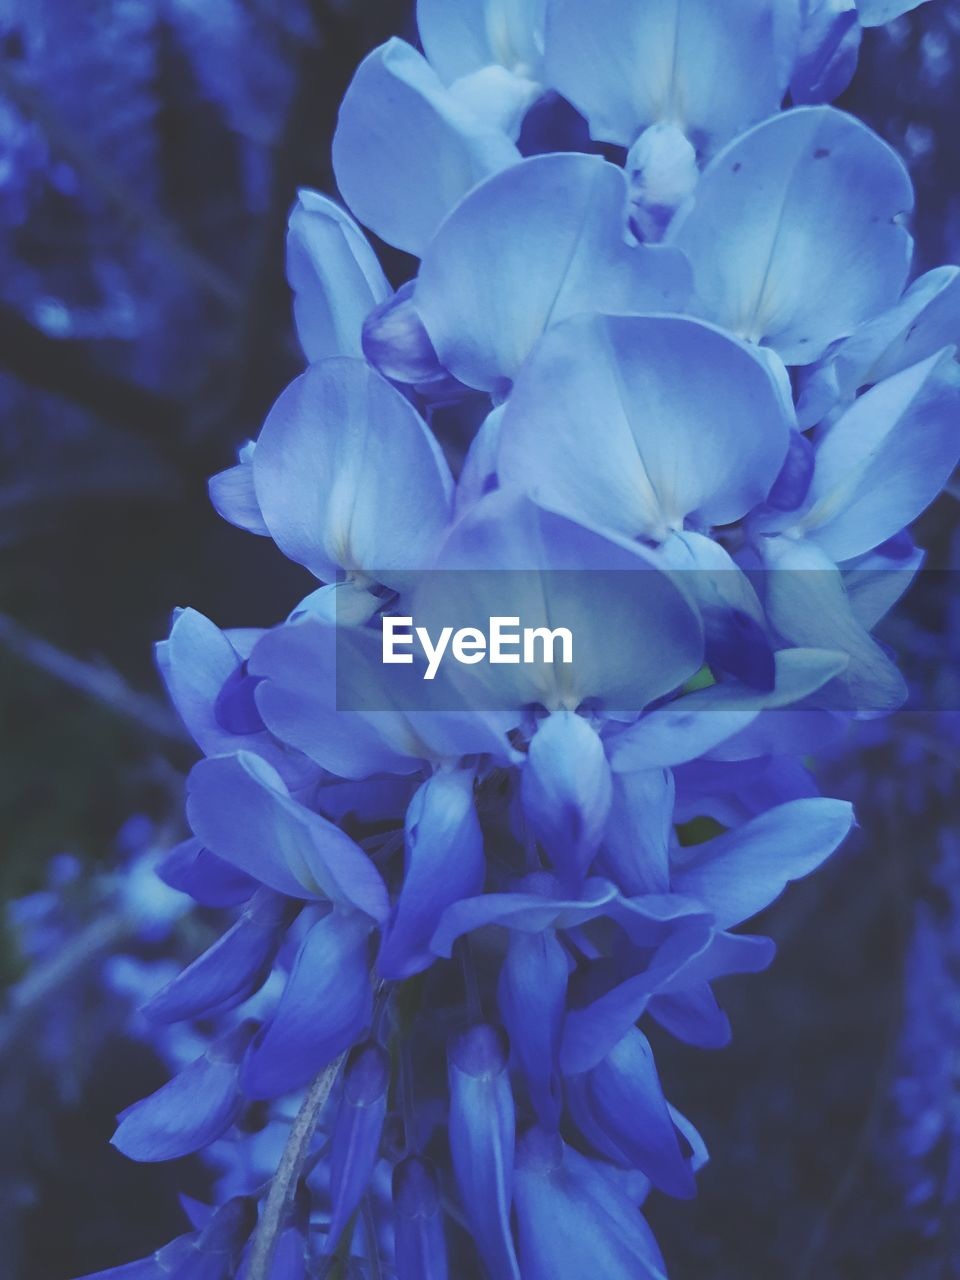 flowering plant, flower, beauty in nature, petal, fragility, vulnerability, plant, close-up, inflorescence, freshness, flower head, growth, nature, no people, purple, focus on foreground, blue, day, outdoors, botany, bunch of flowers